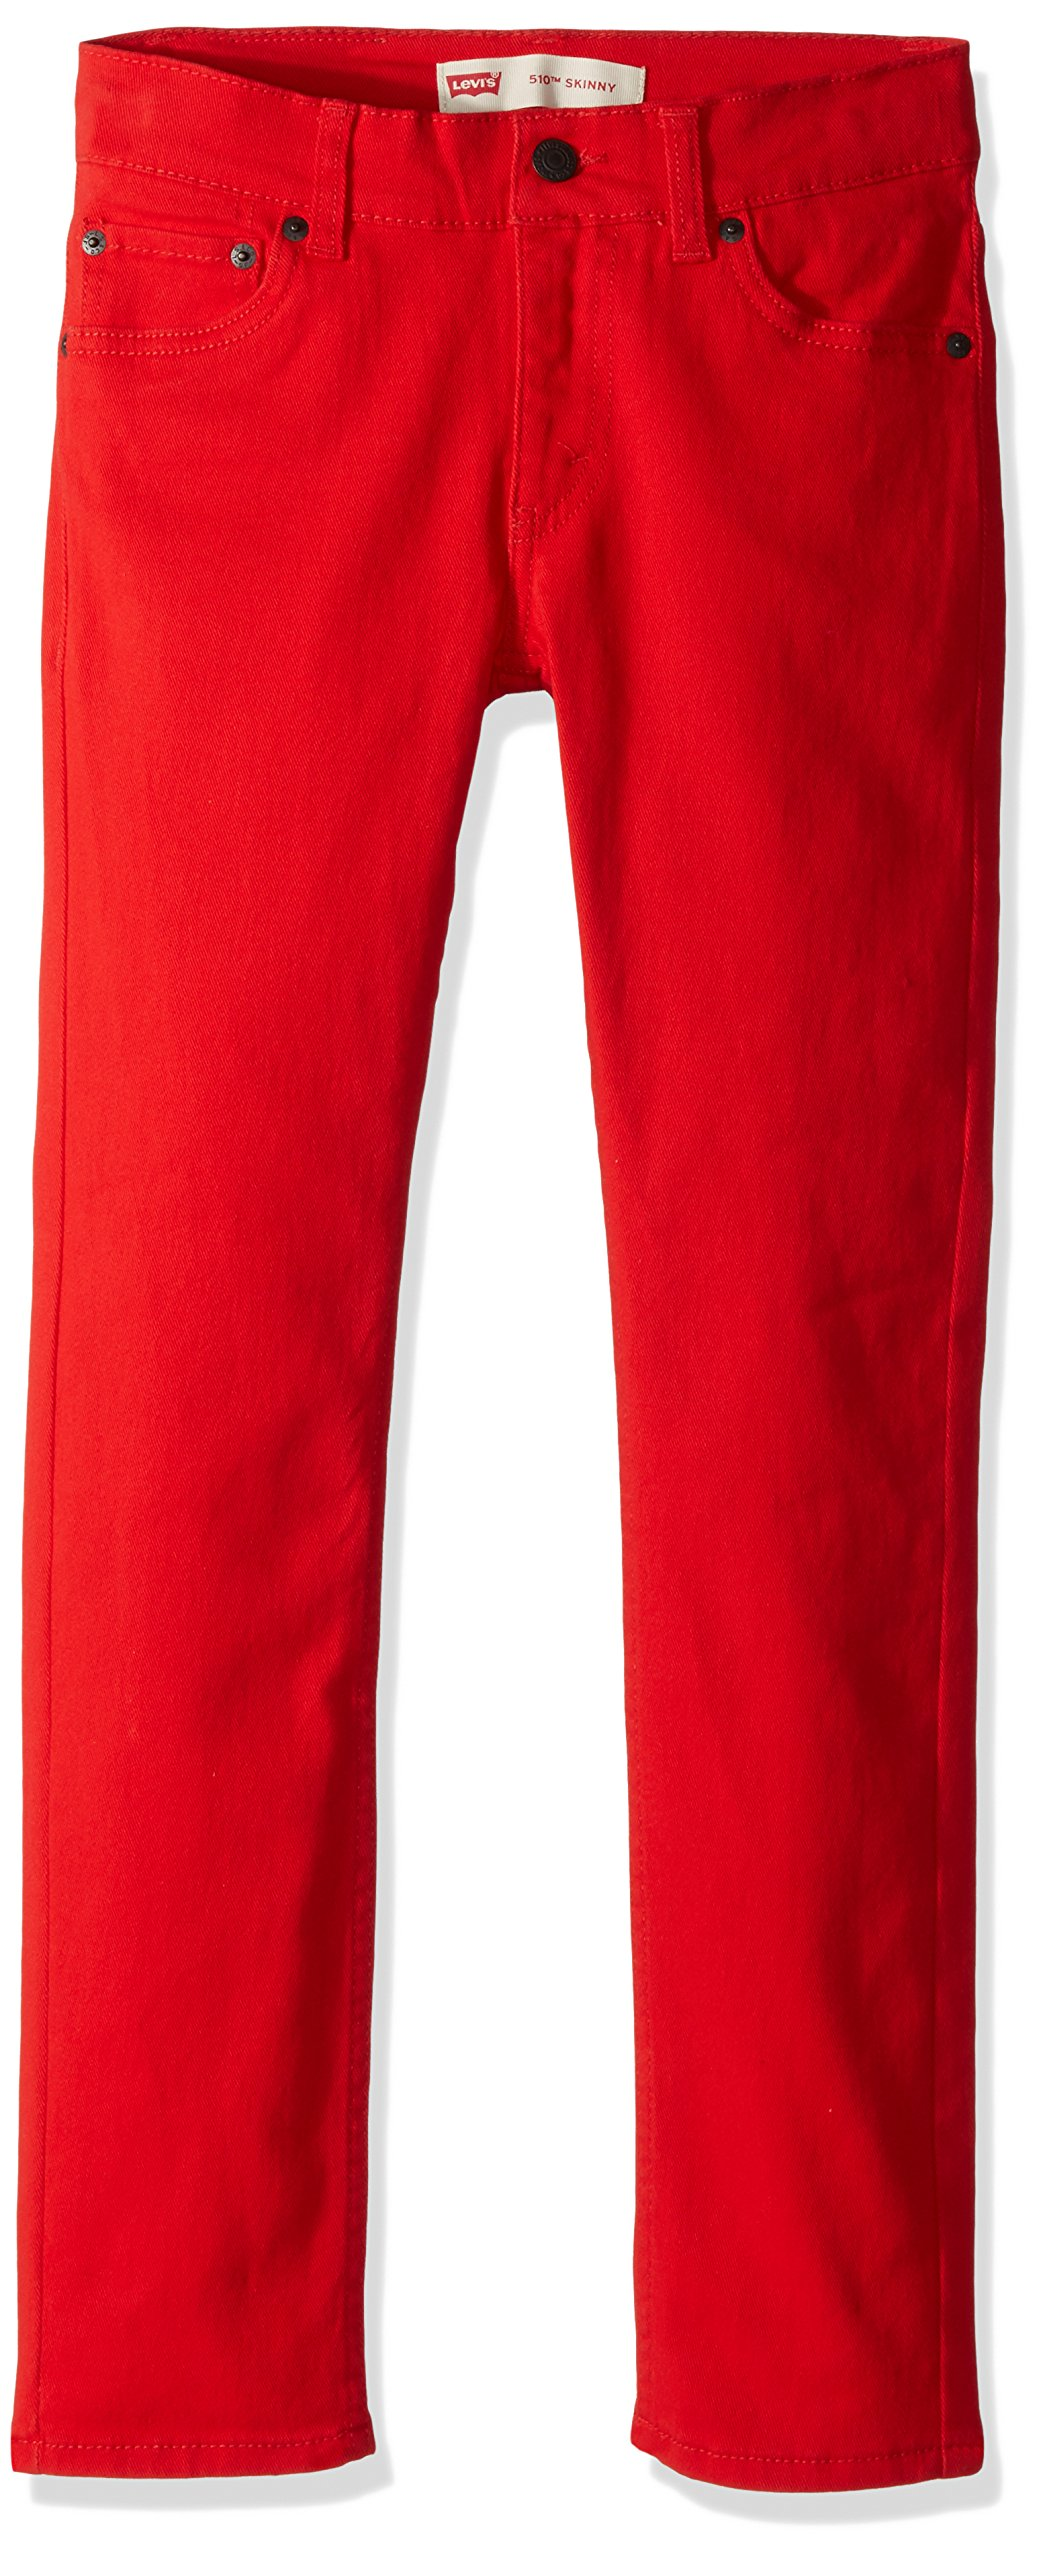 Levi's Boys 510 Skinny Fit Jeans, Chinese red 18